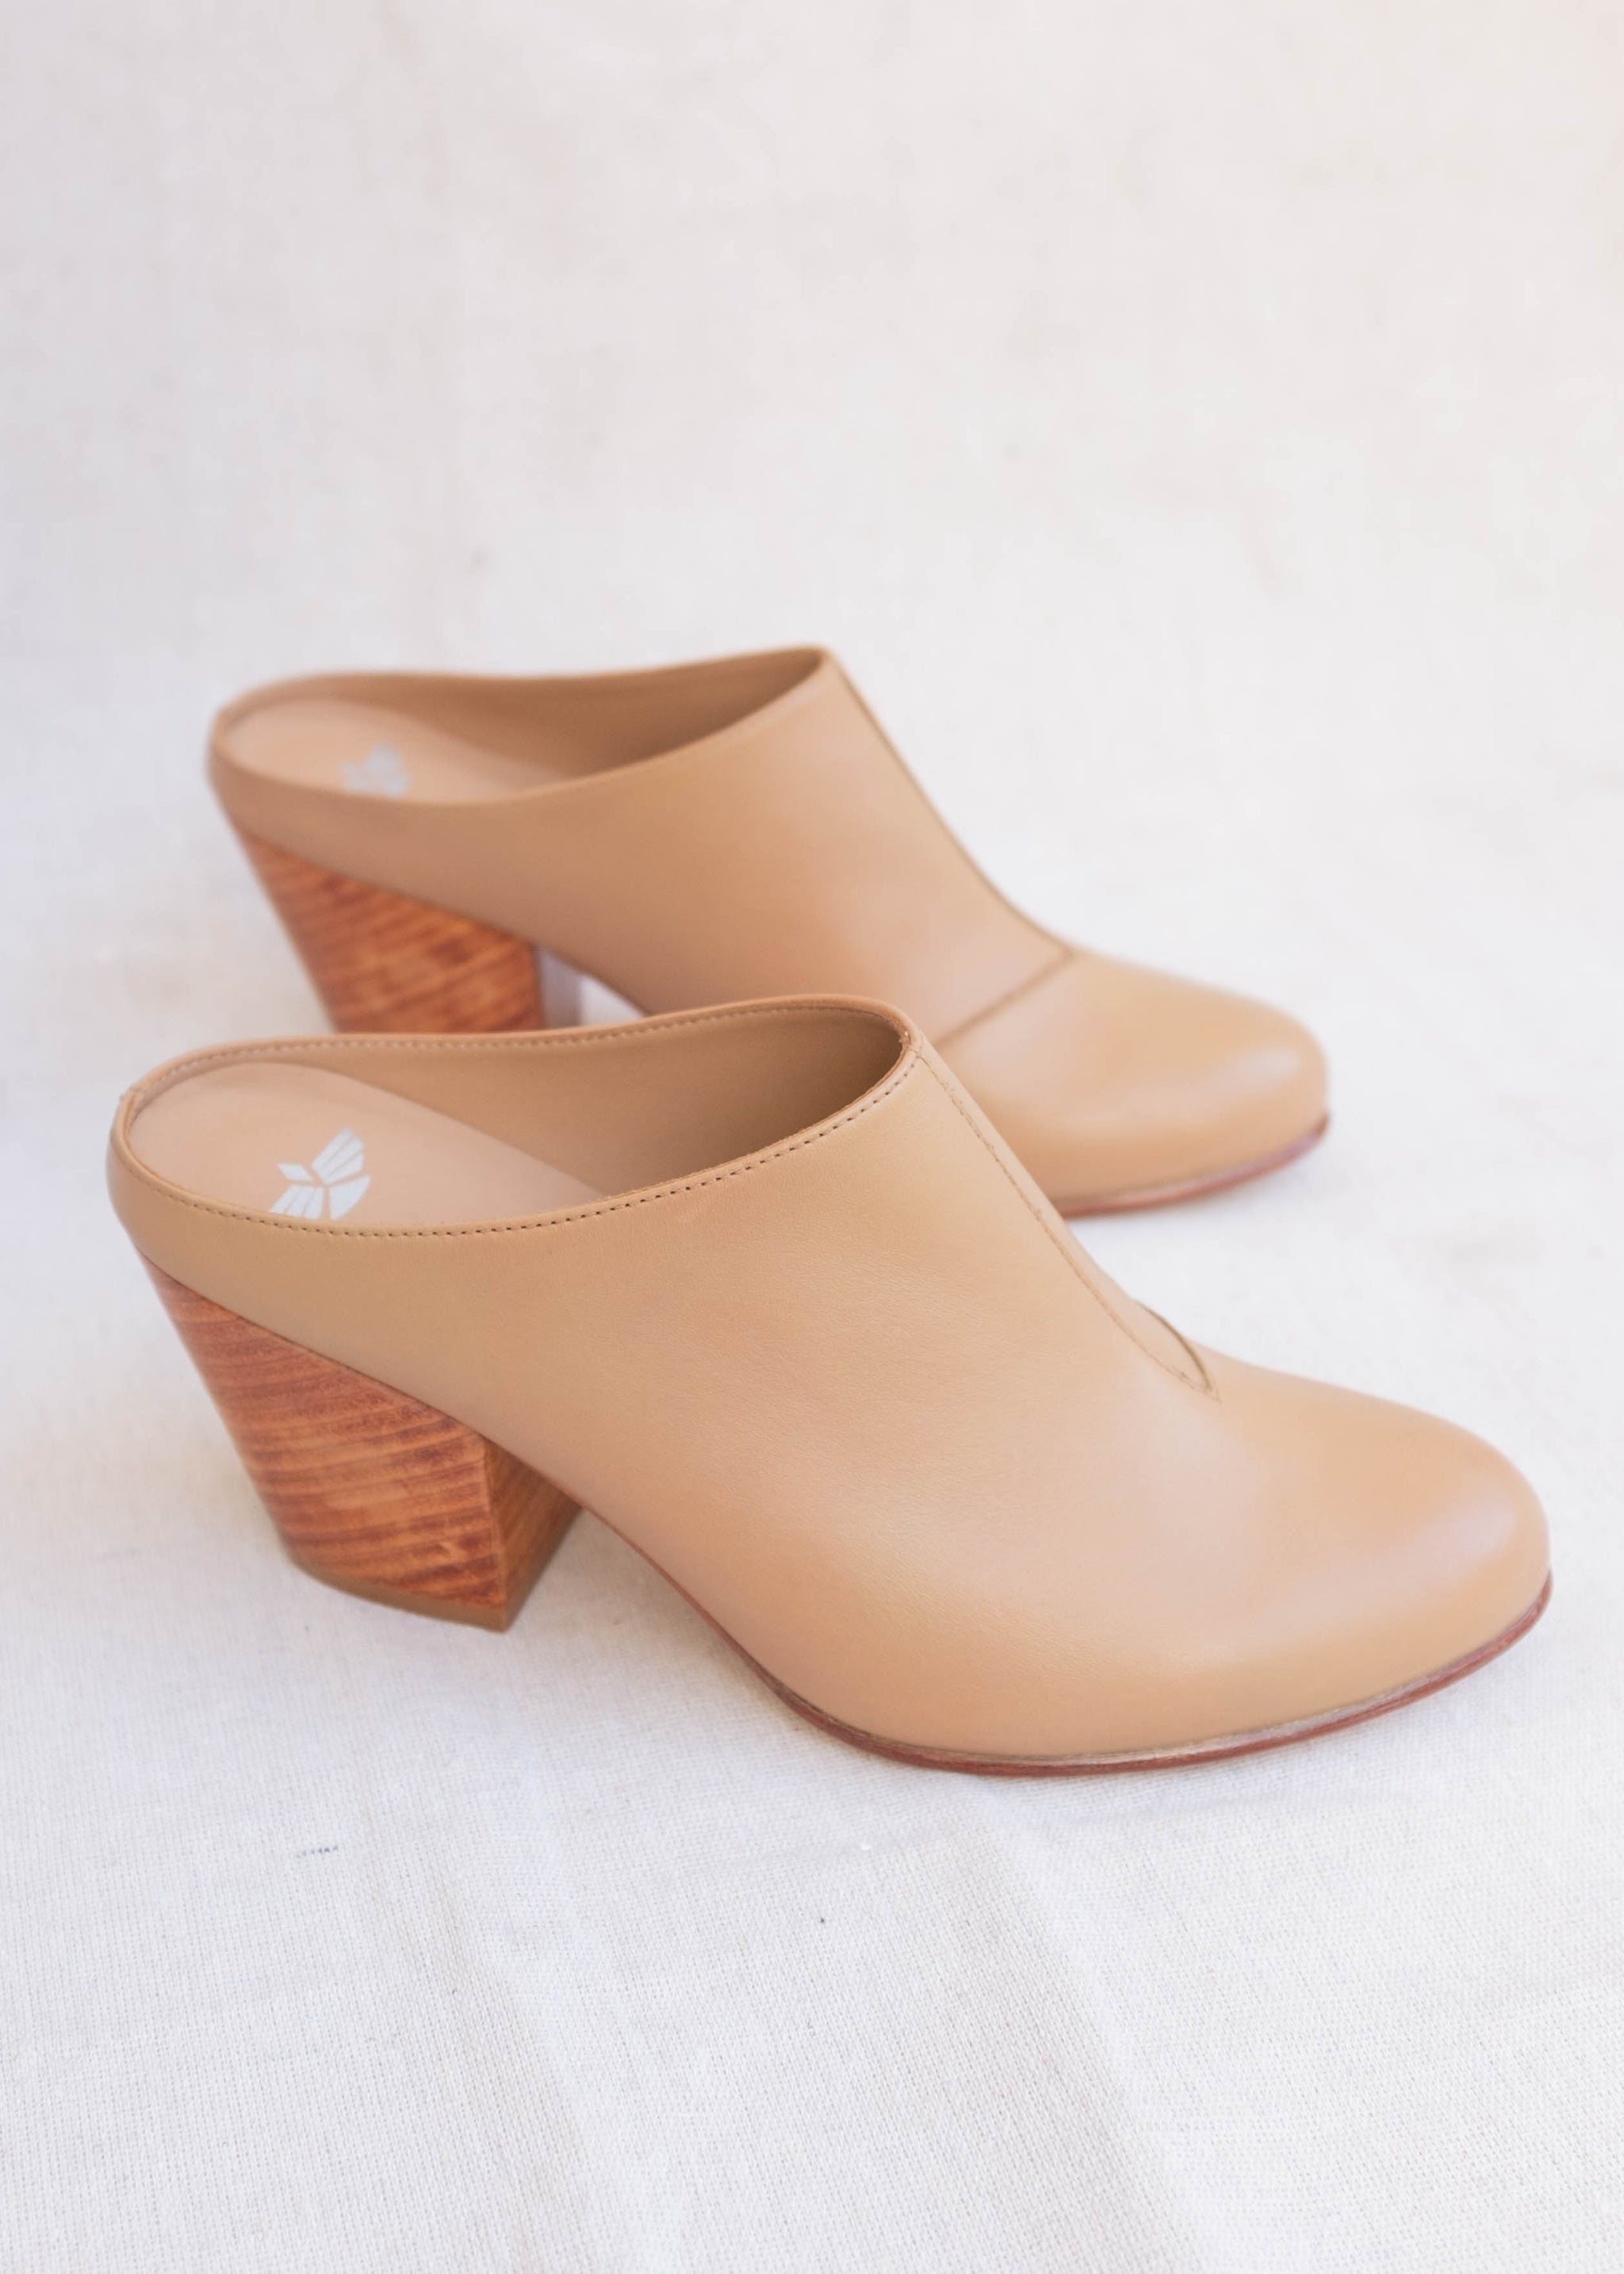 Side view of light brown leather mule with large wooden heel.